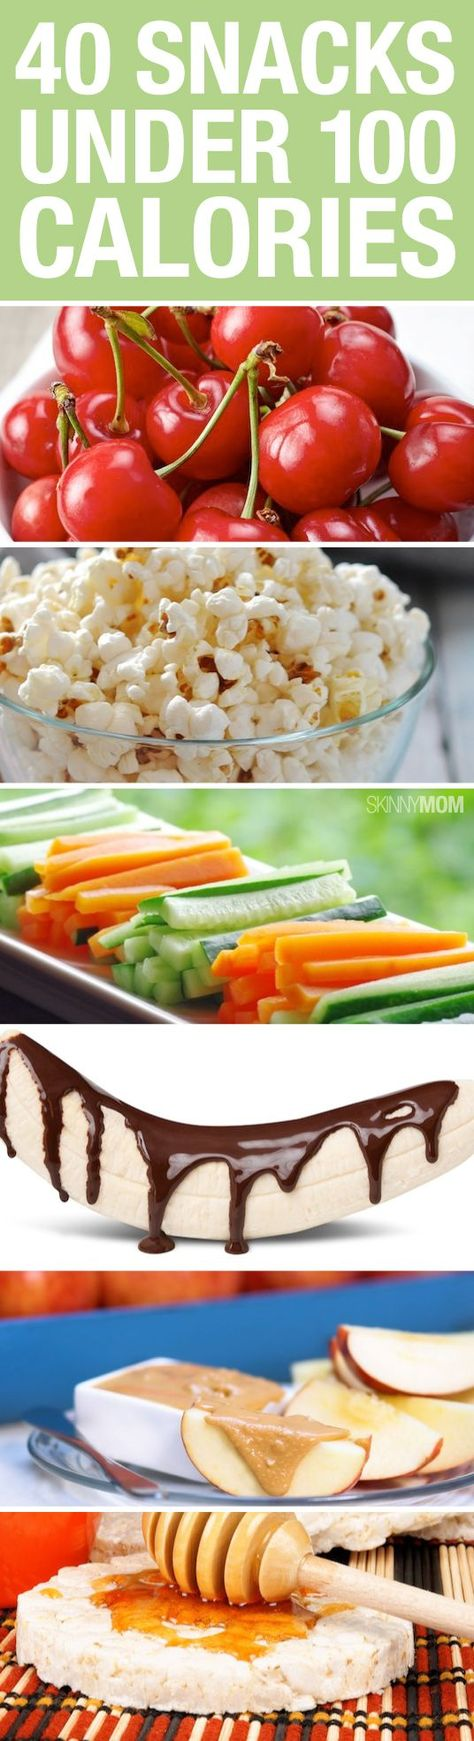 Looking for some light snack? Try out any of these that are under 100 calories!